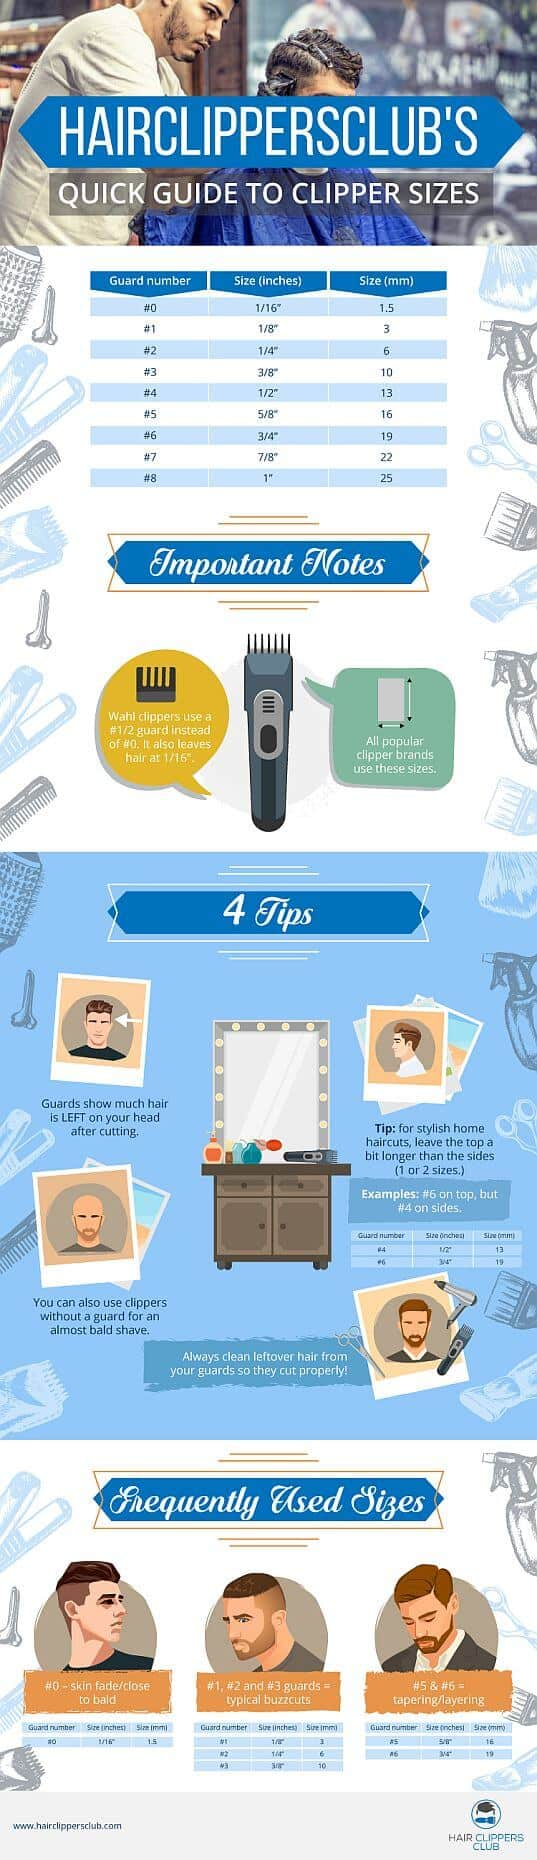 Definite Guide To Hair Clipper Sizes - HairClippersClub